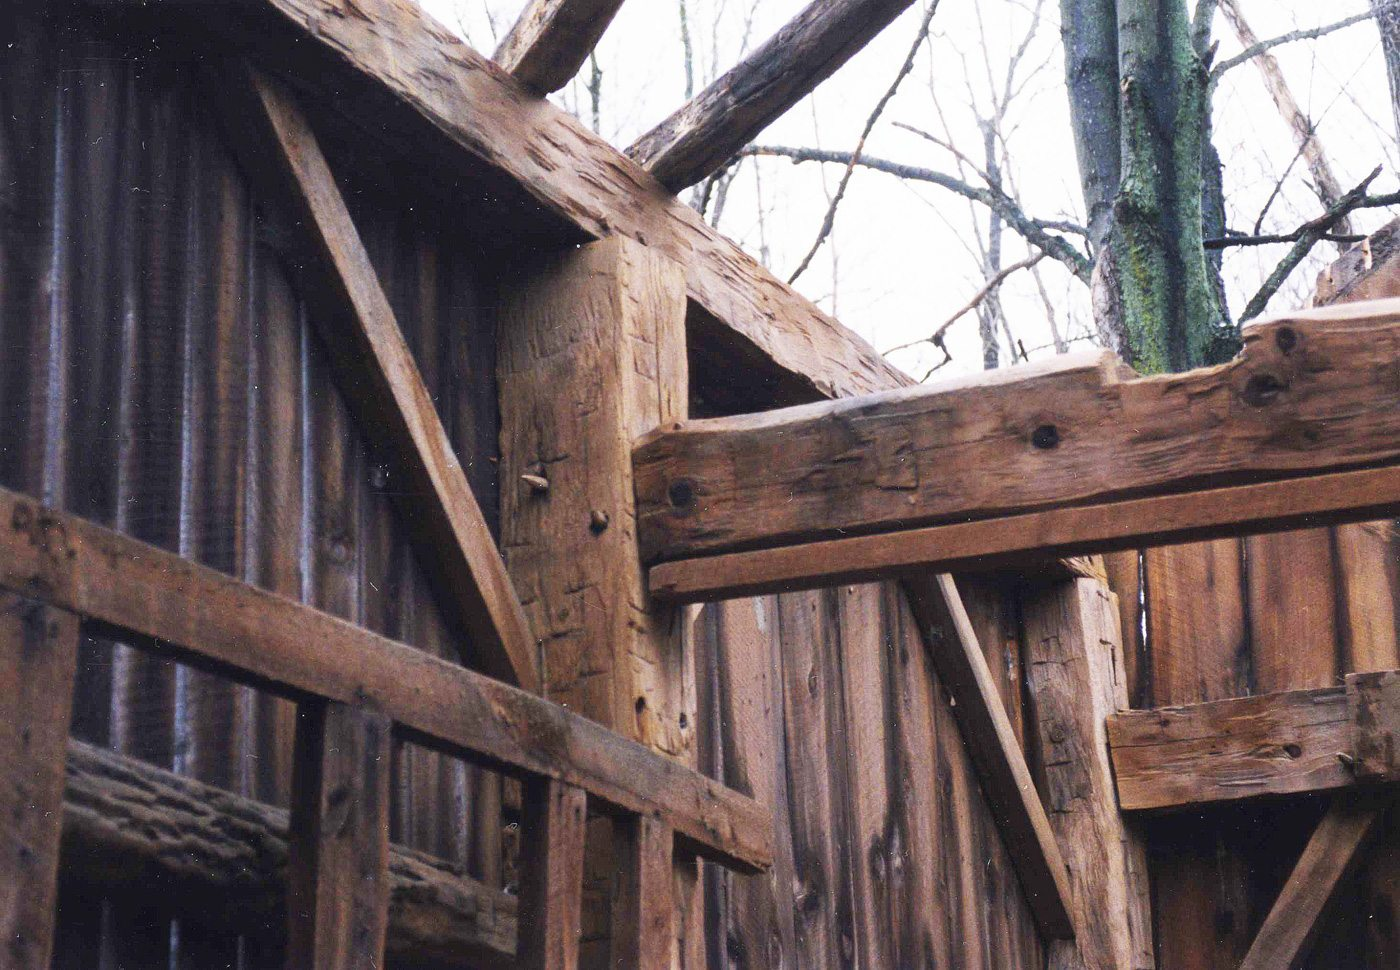 Detail of Corn Crib post and cross beams, 2001, Photograph by Constance Kheel